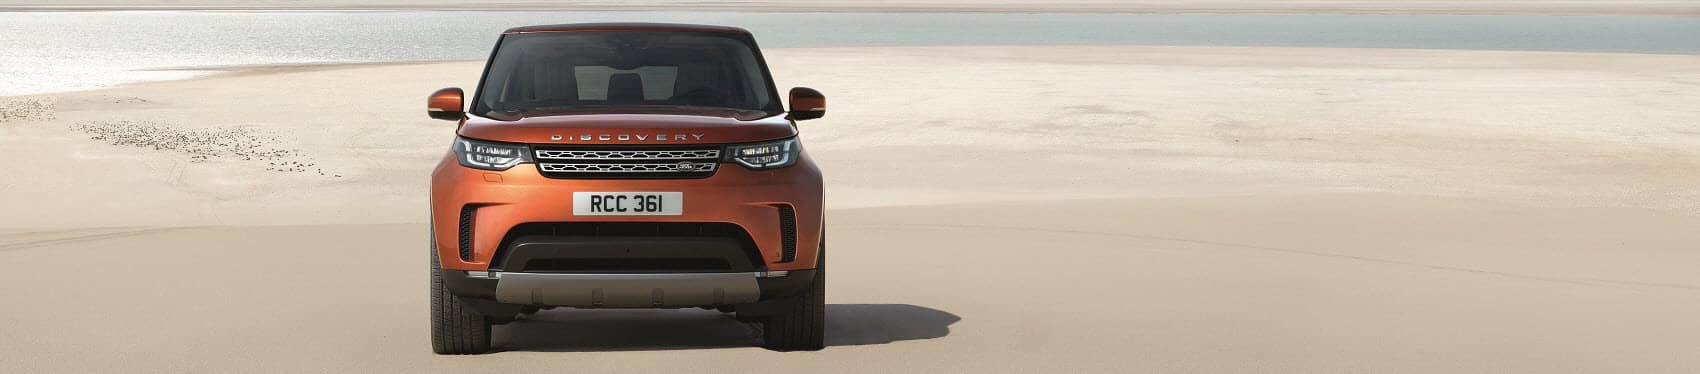 Land Rover Discovery Configurations